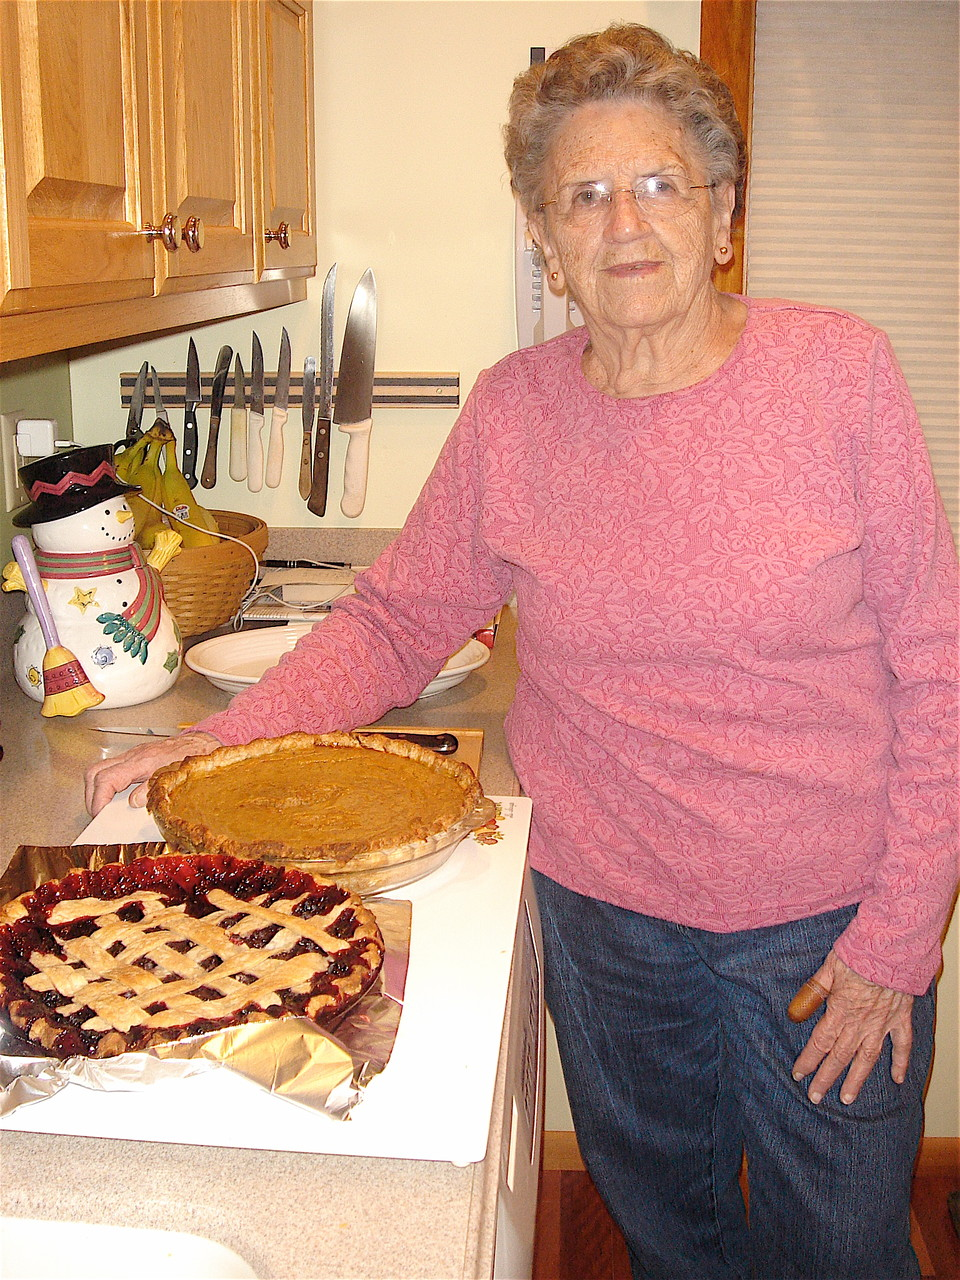 Xmas, 2010  Mary Lou and her pies!